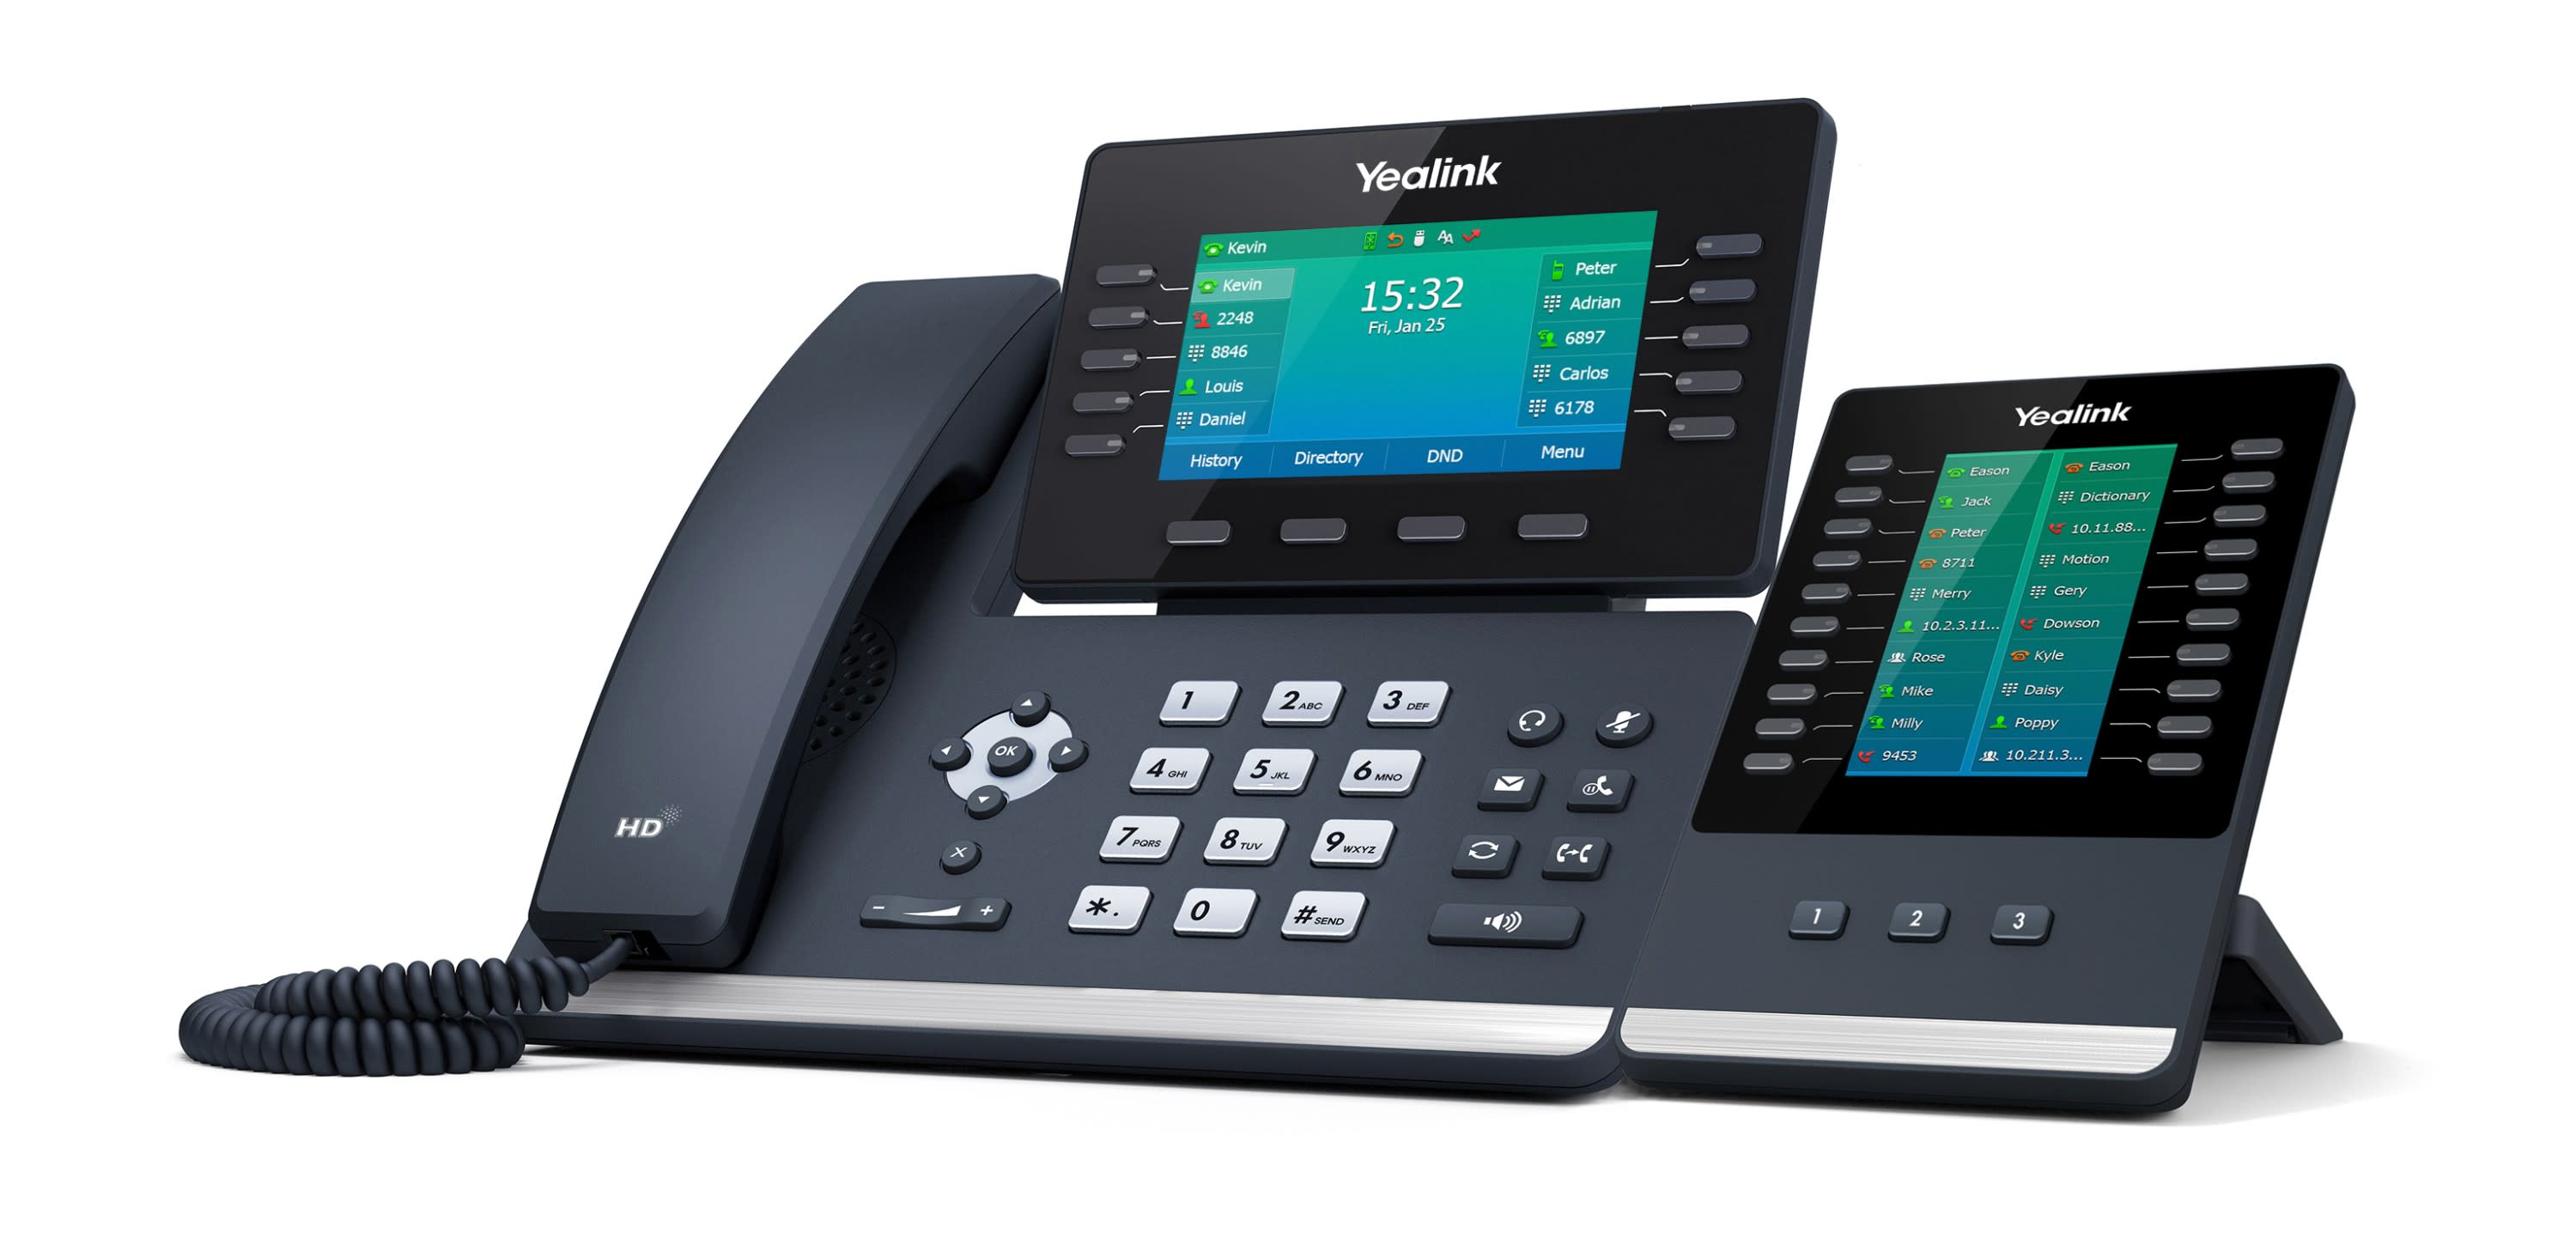 Yealink SIP-T54W Color Prime Business Phone w/ Side Car attachment